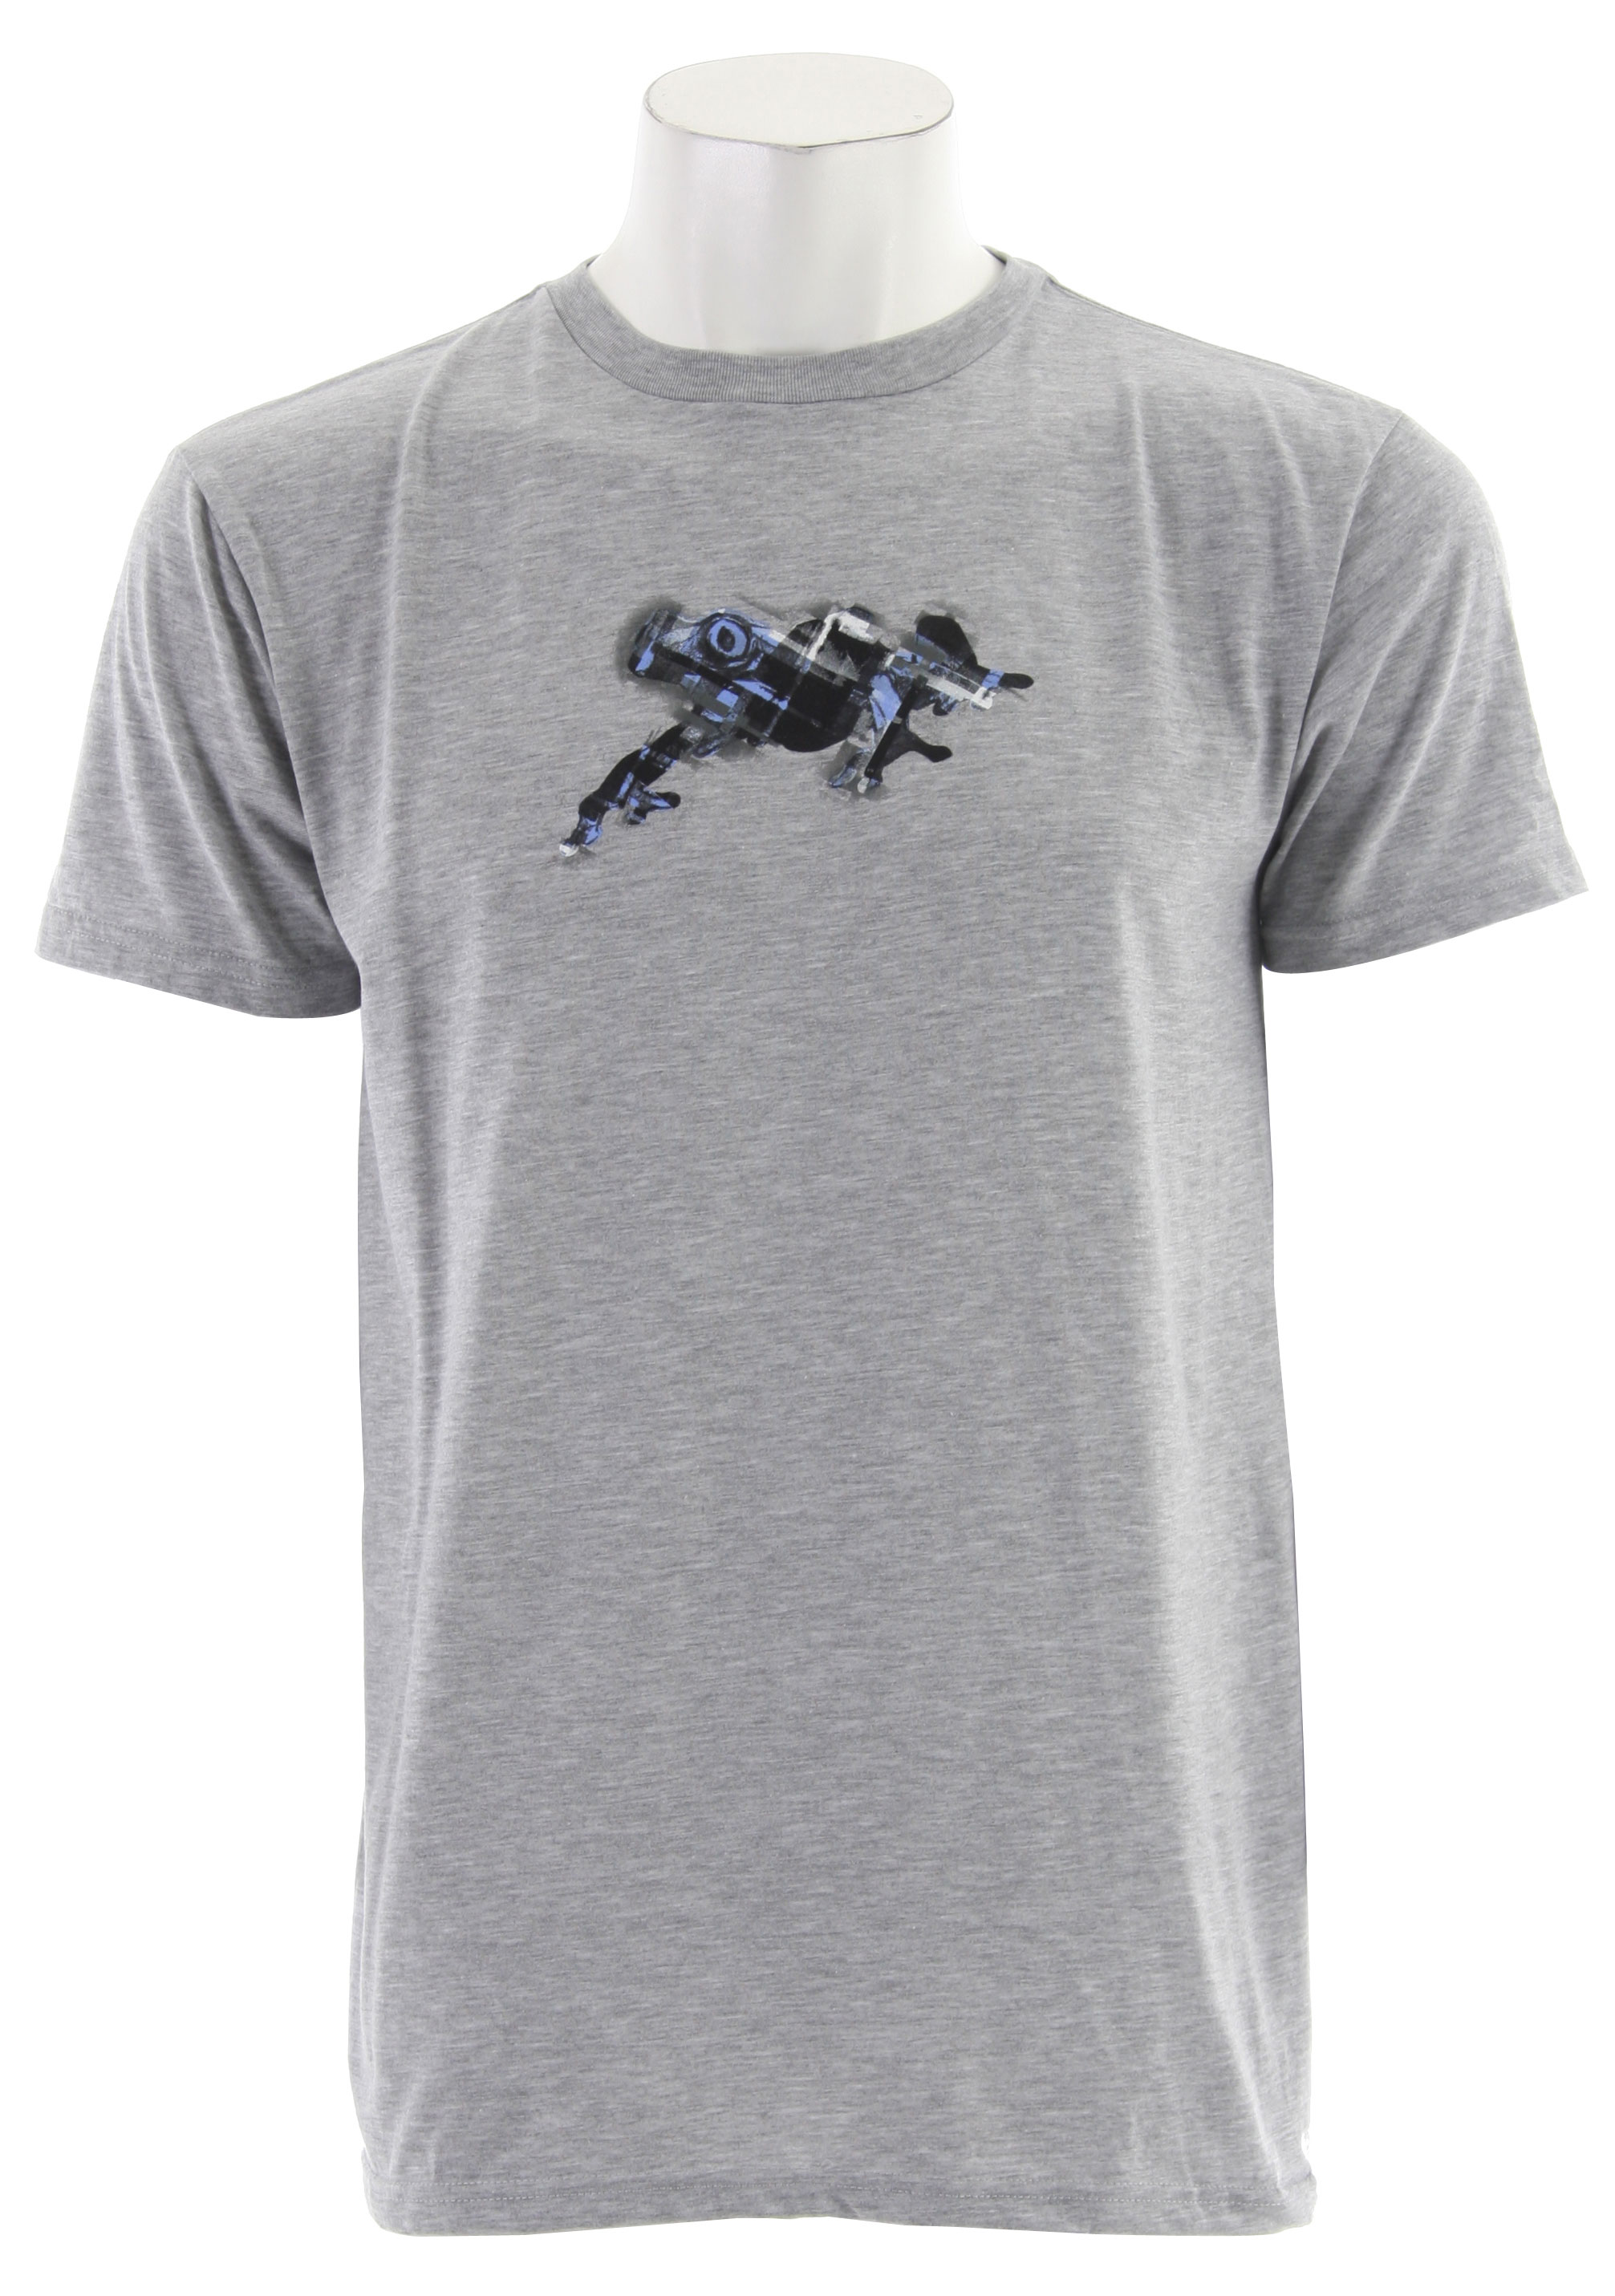 Oakley Frogyle Sun Shirt Heather Grey - $17.95